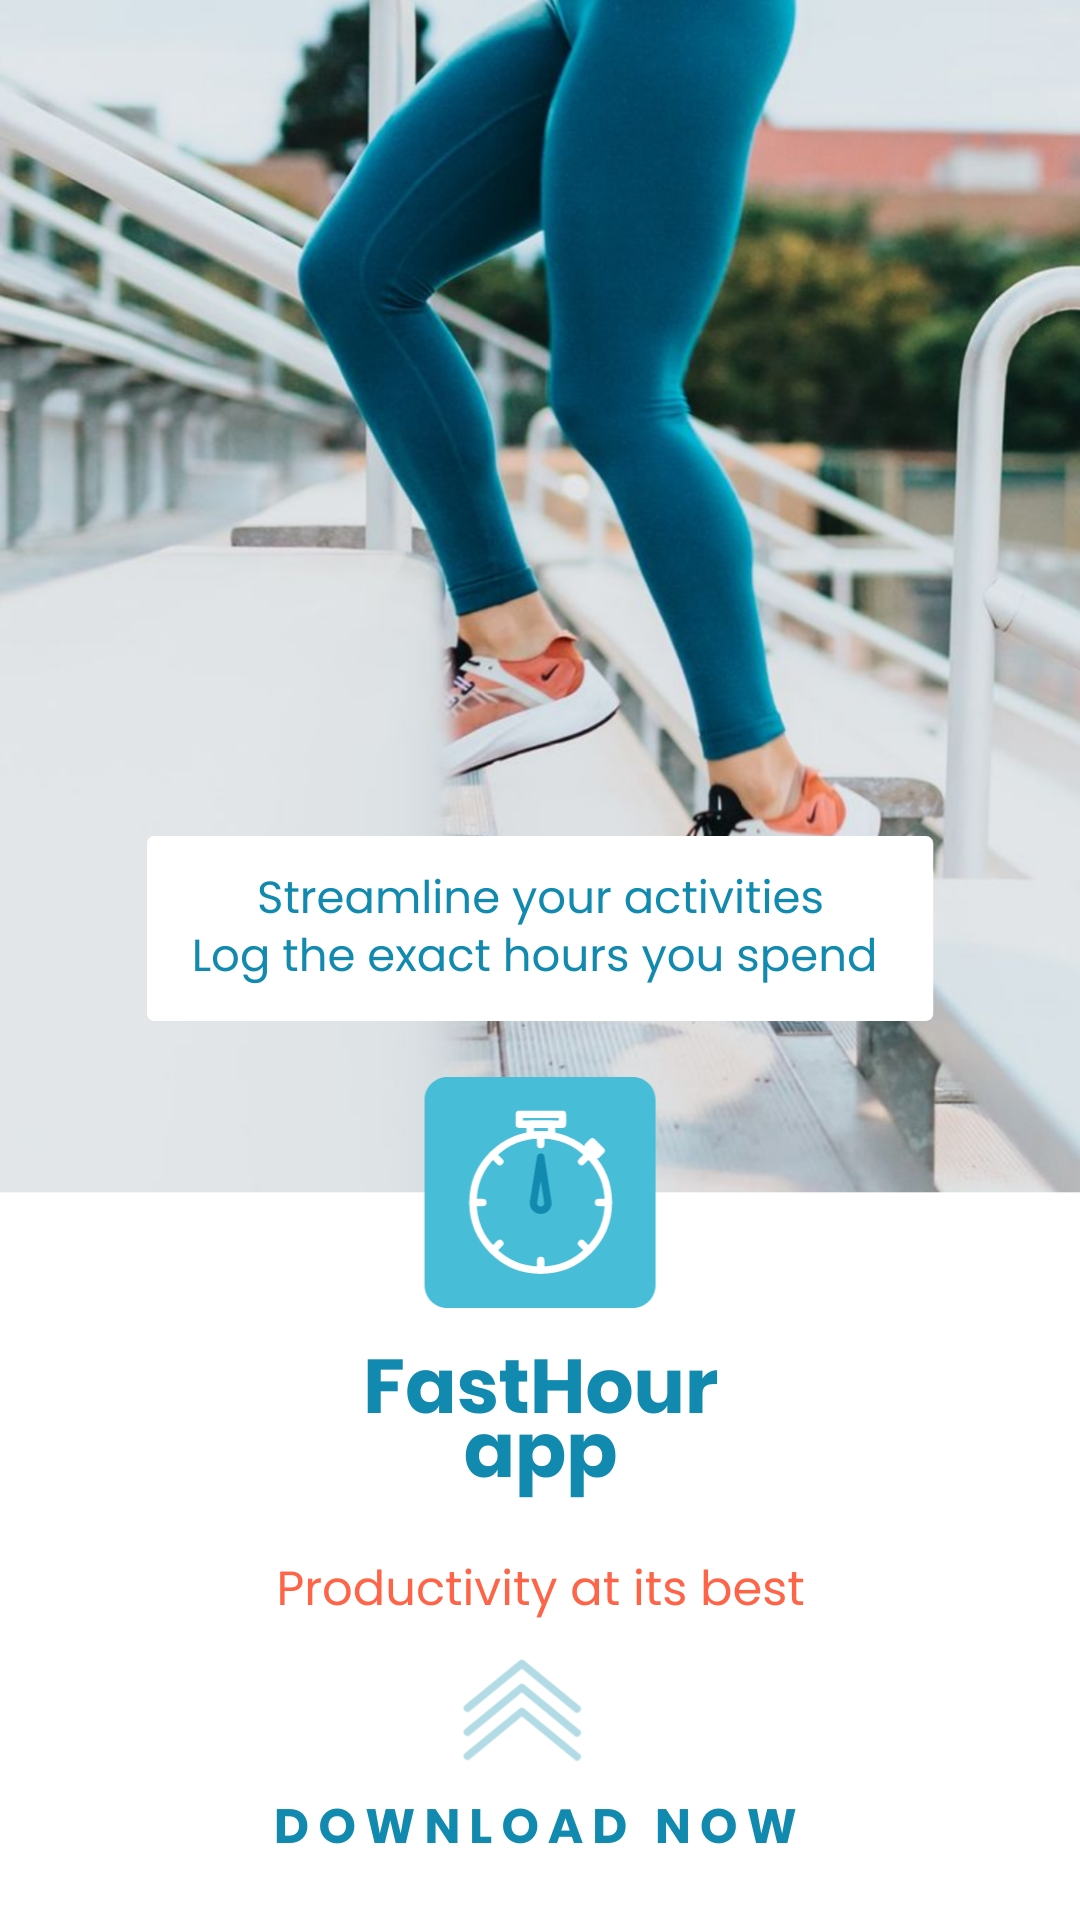 Hour Tracking App - Instagram Video Ad Template